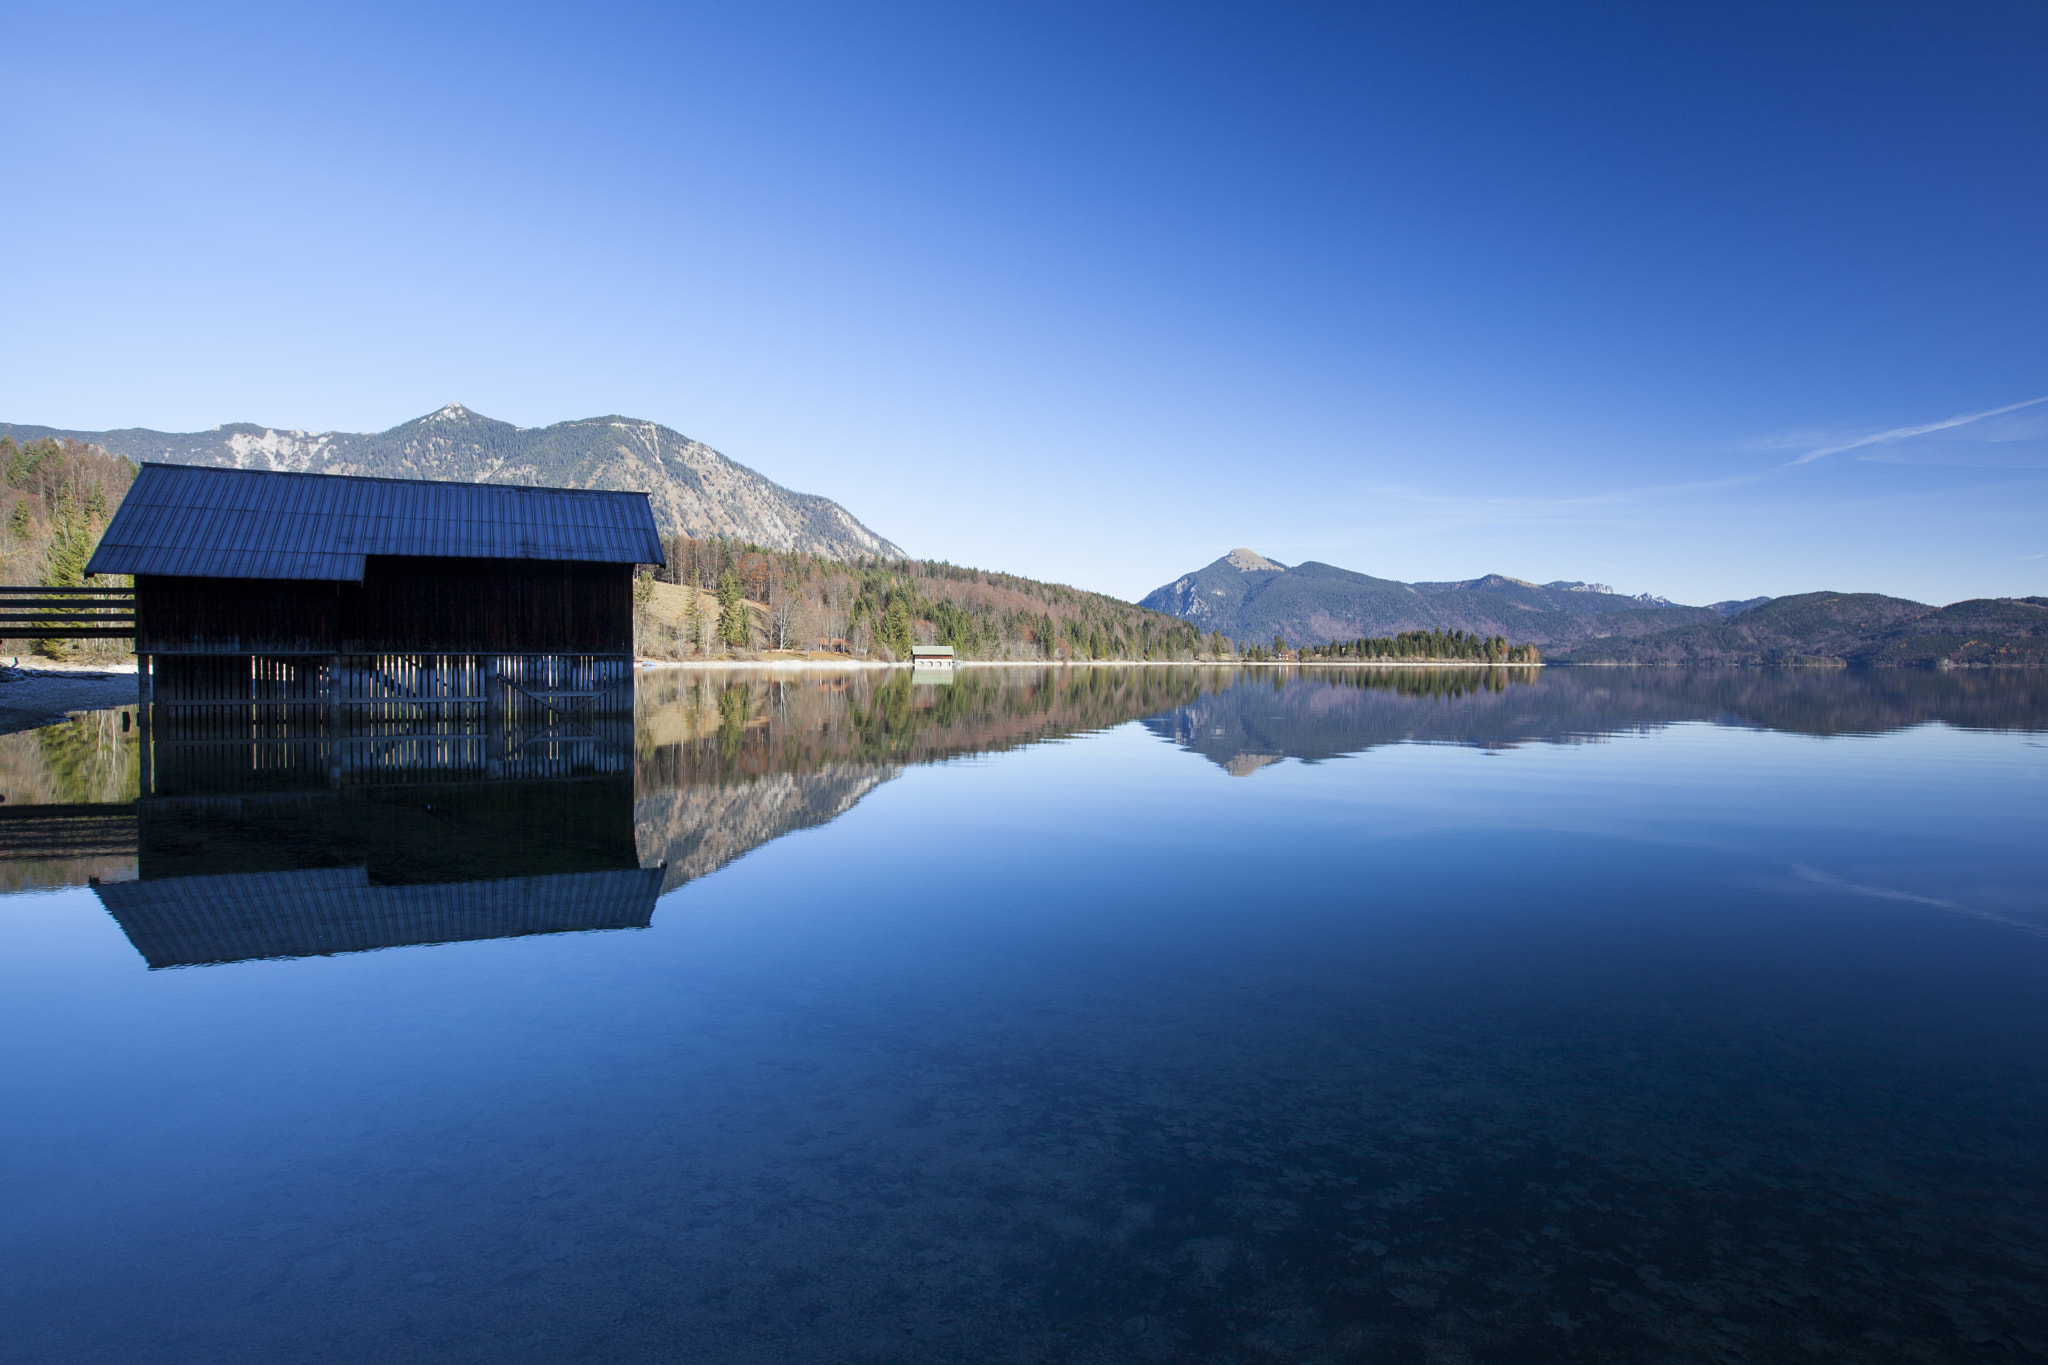 Photograph Am Walchensee by Hartmut Albert on 500px